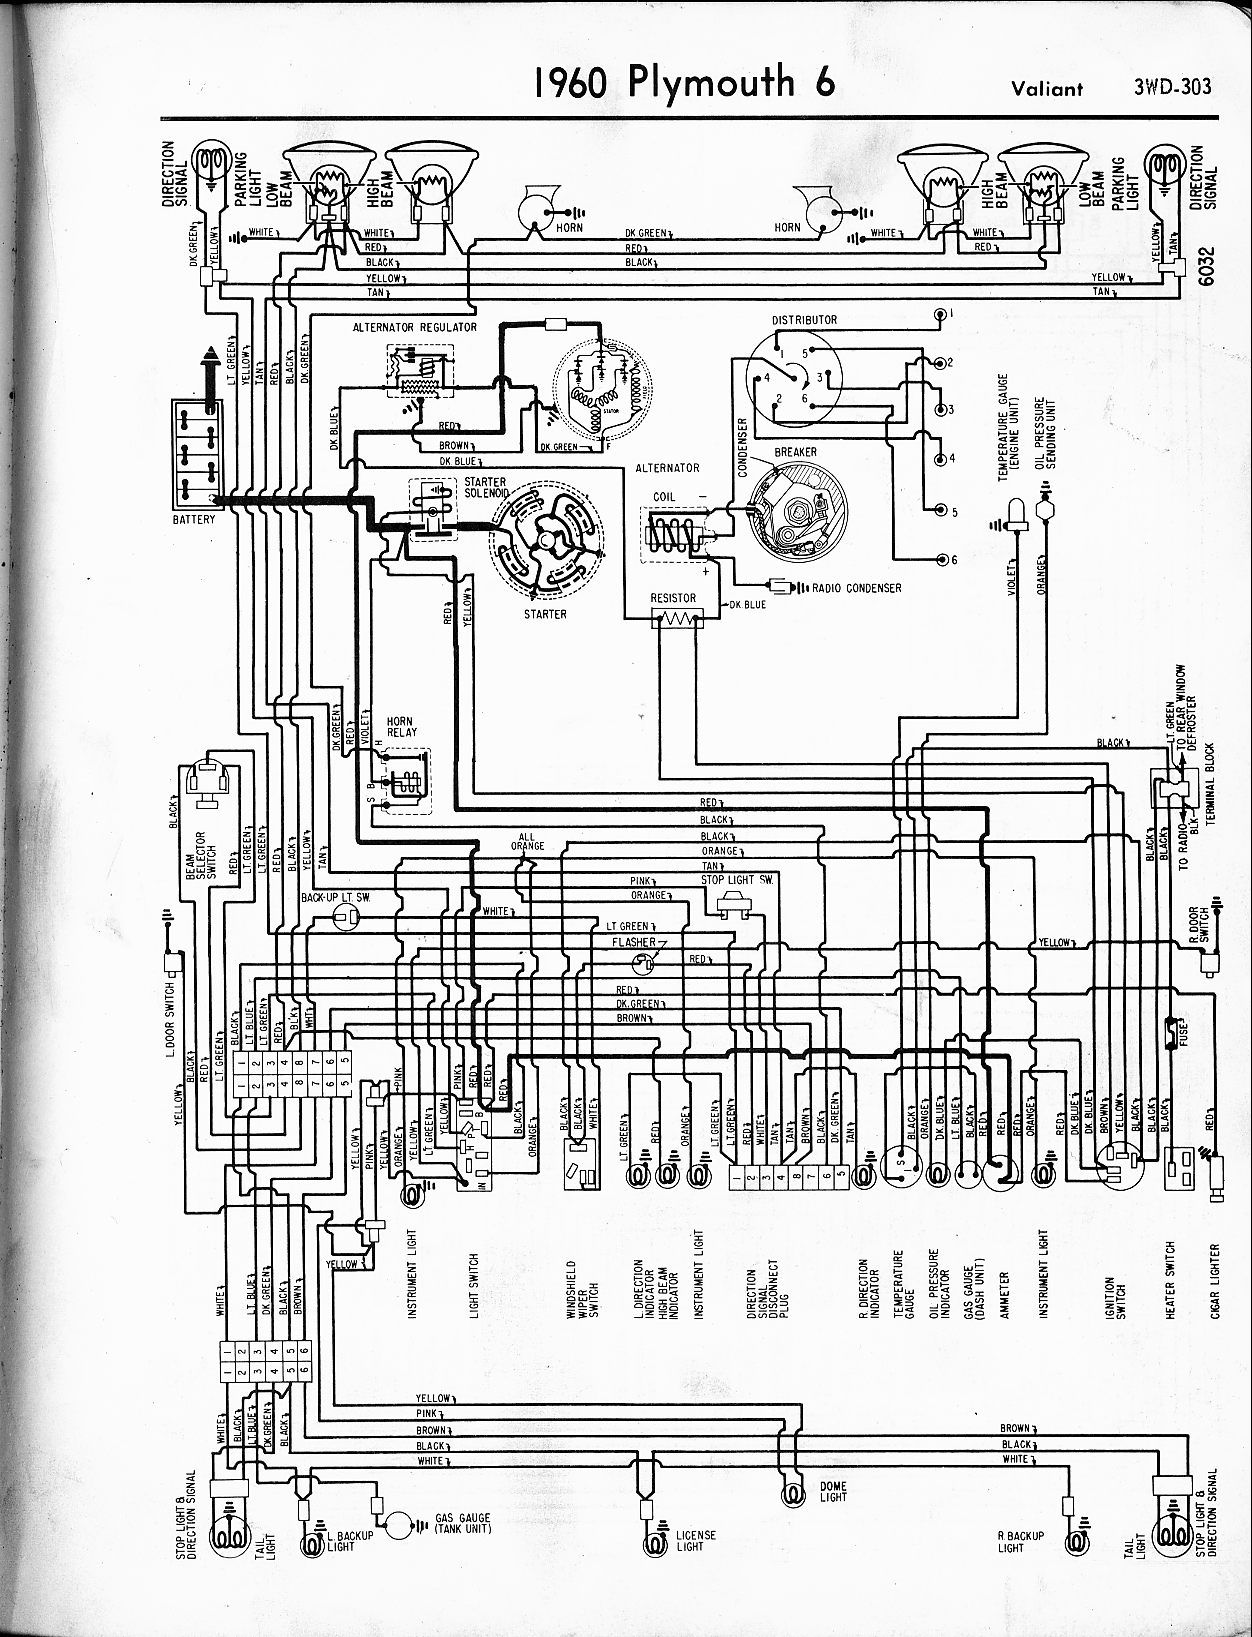 1957 plymouth wiring diagram wiring diagram1956 1965 plymouth wiring the old car manual project